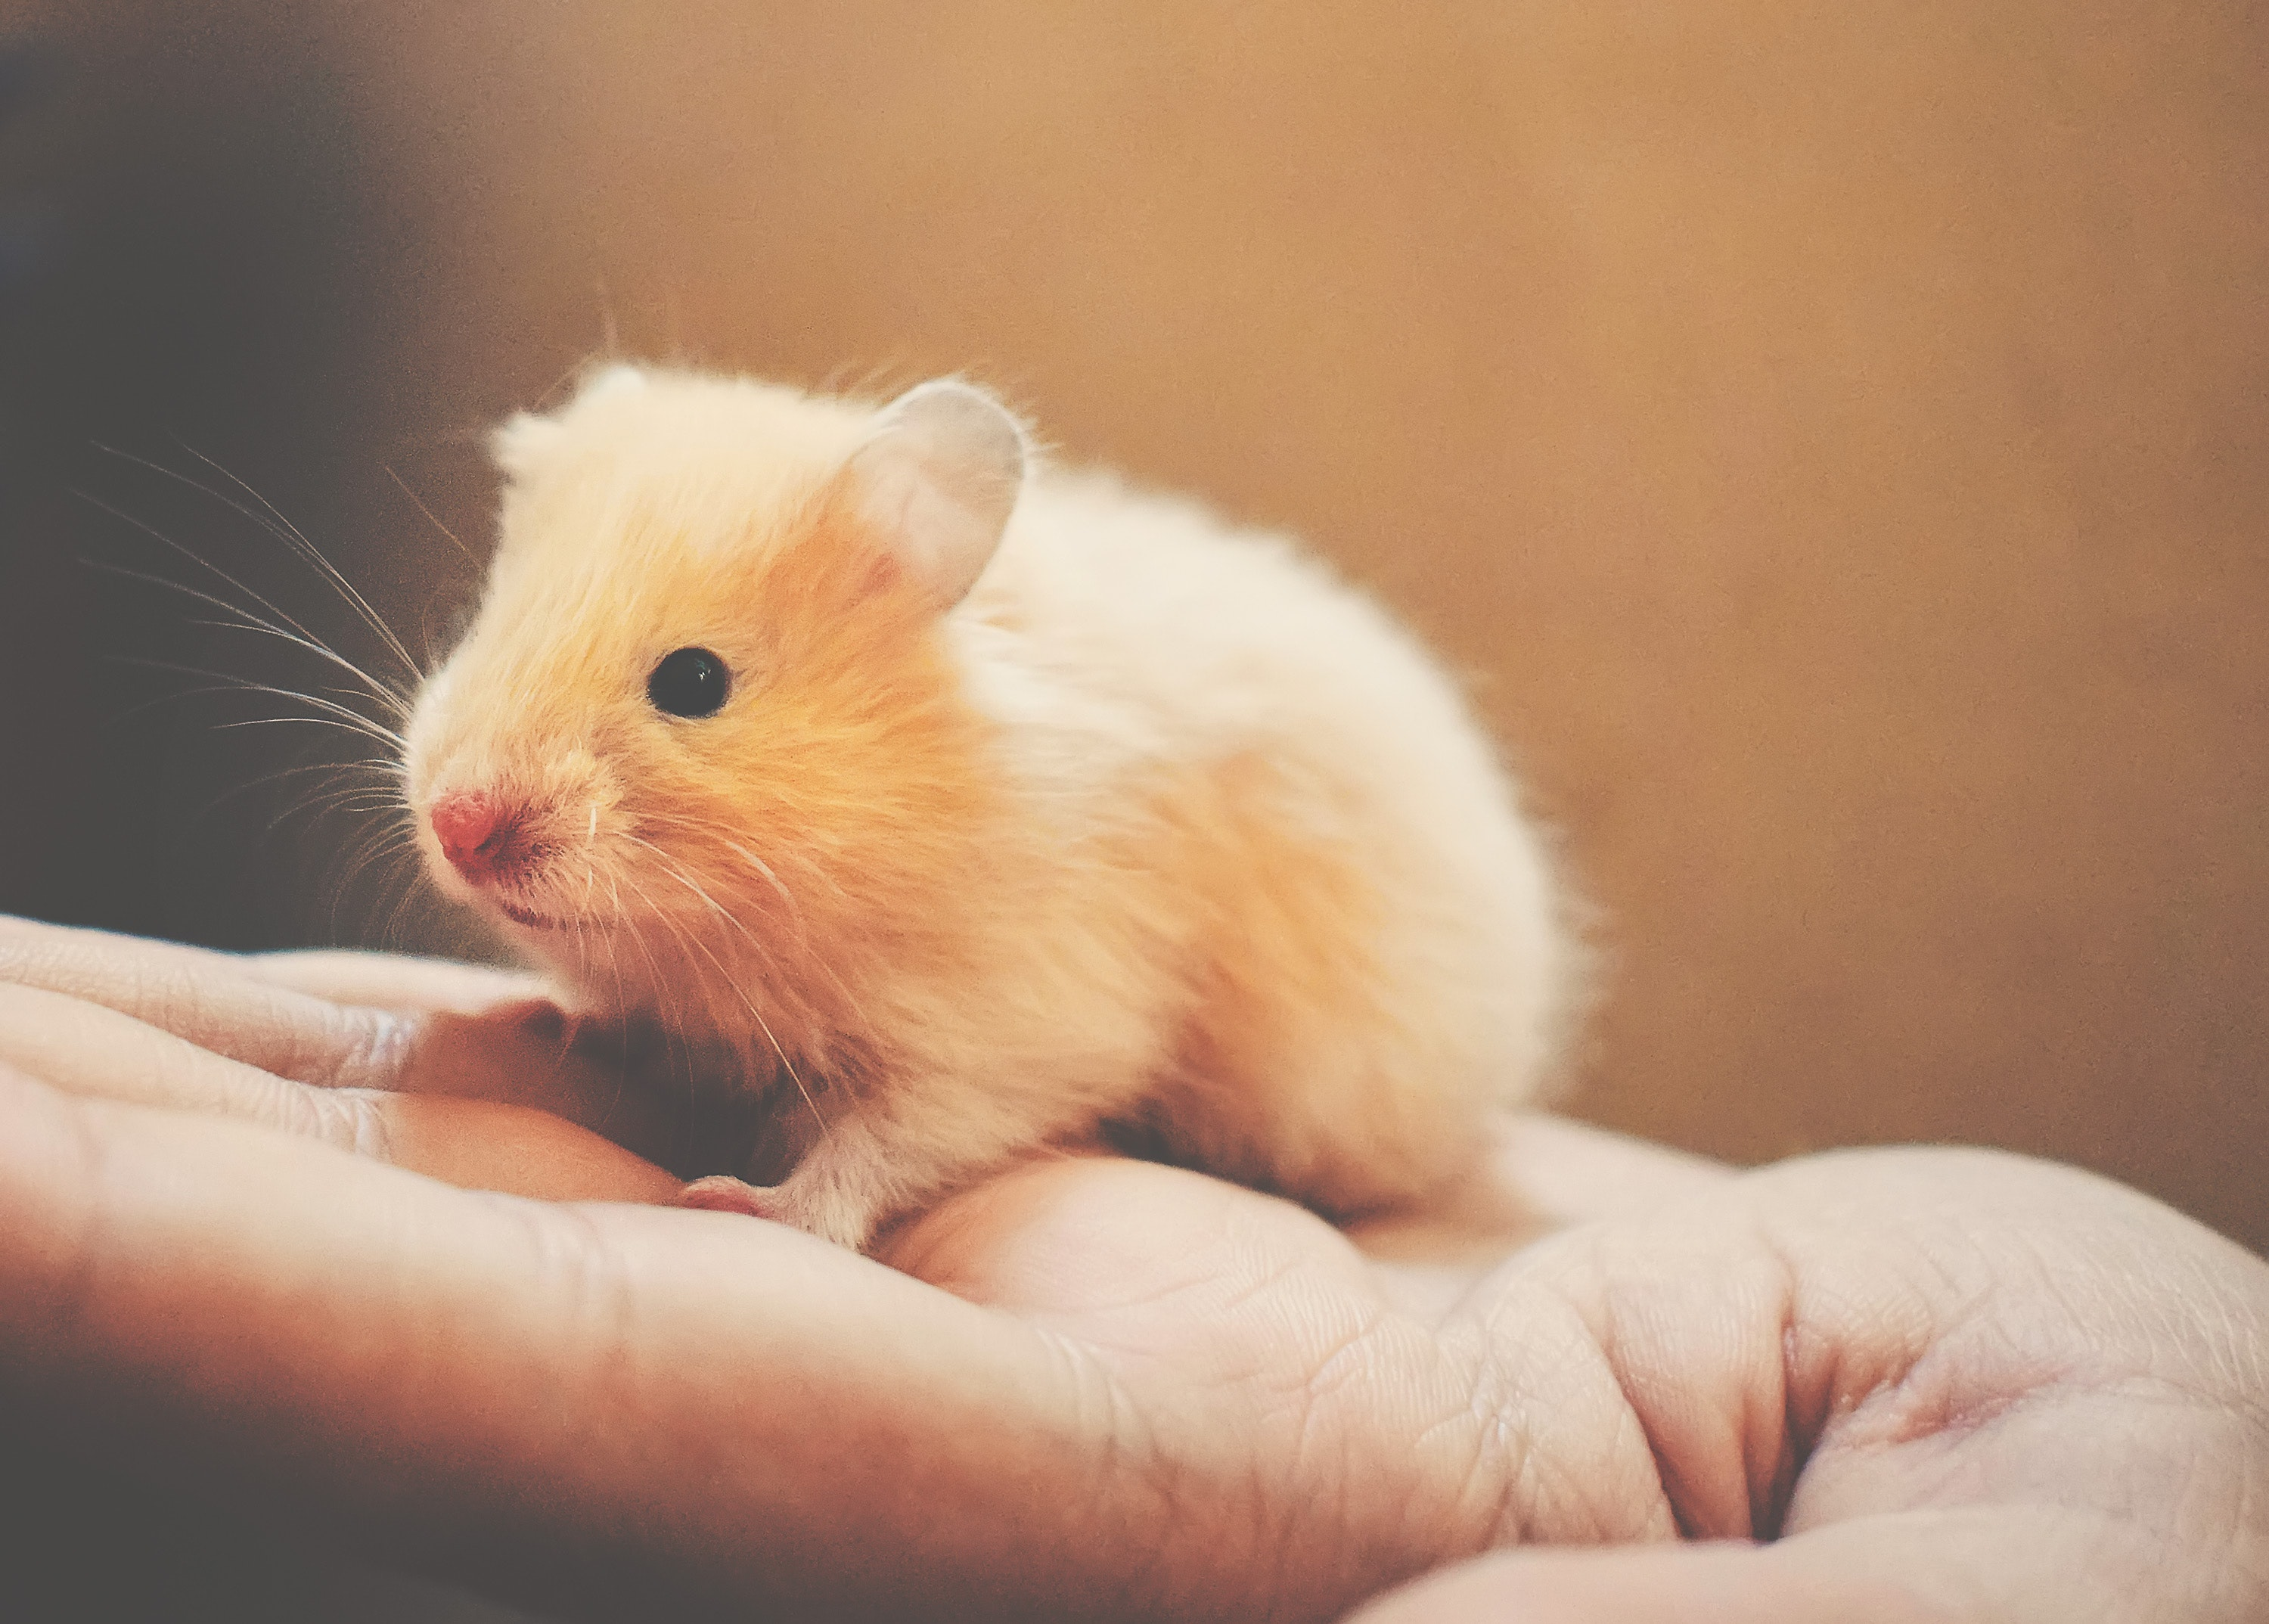 Shallow Focus Photography of White Rodent, Little, Young, Whisker, Rodent, HQ Photo